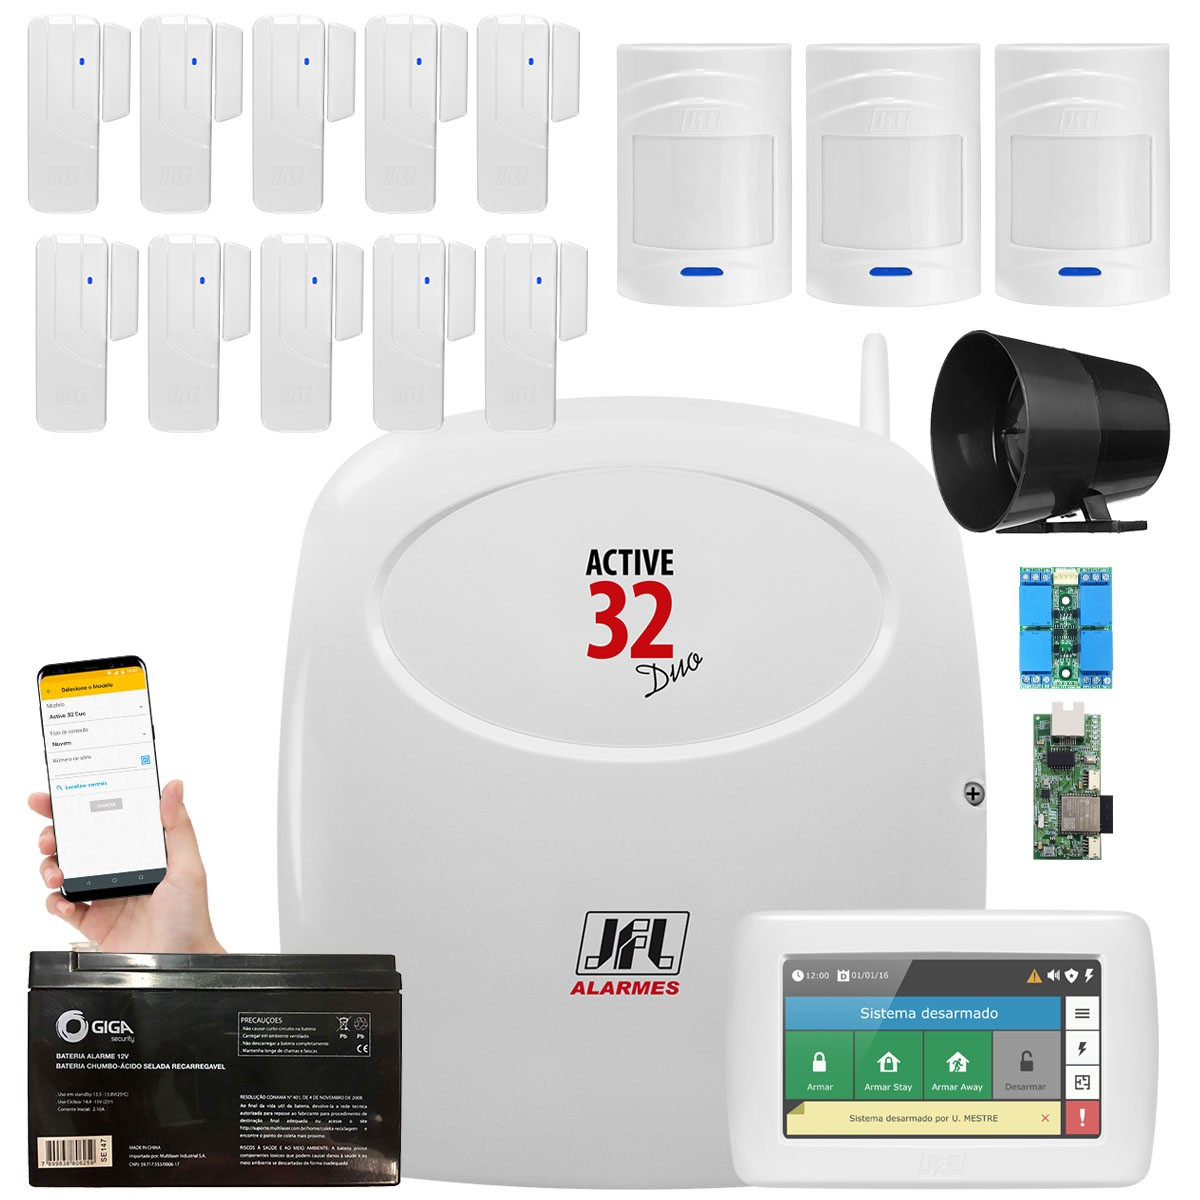 Kit Alarme Monitorado Active 32 Duo Jfl Sensores Sl 220 e 520 Duo